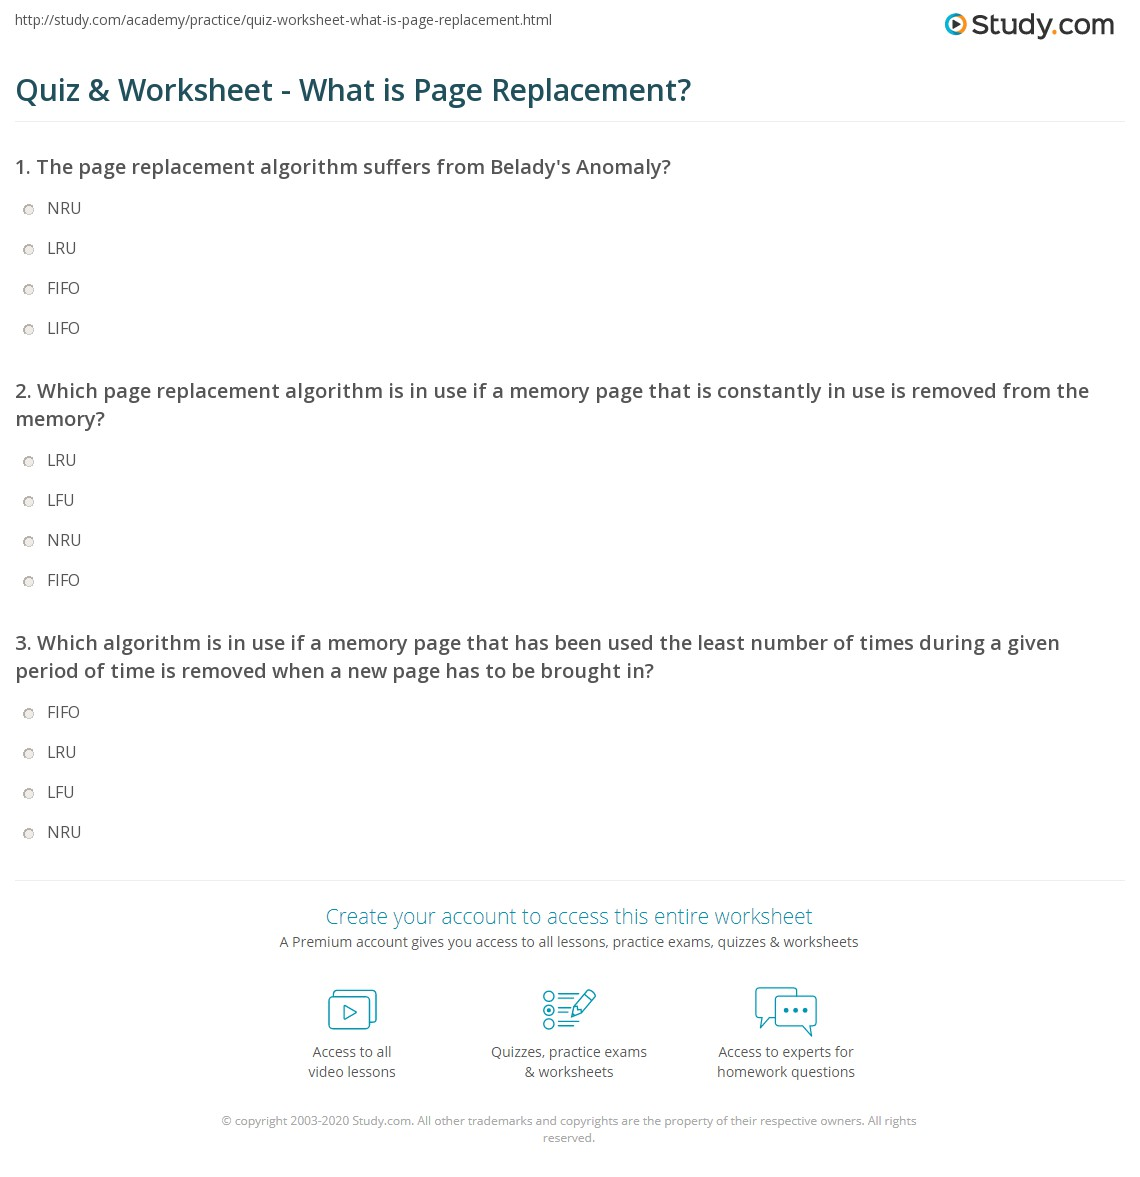 Quiz & Worksheet - What is Page Replacement? | Study com